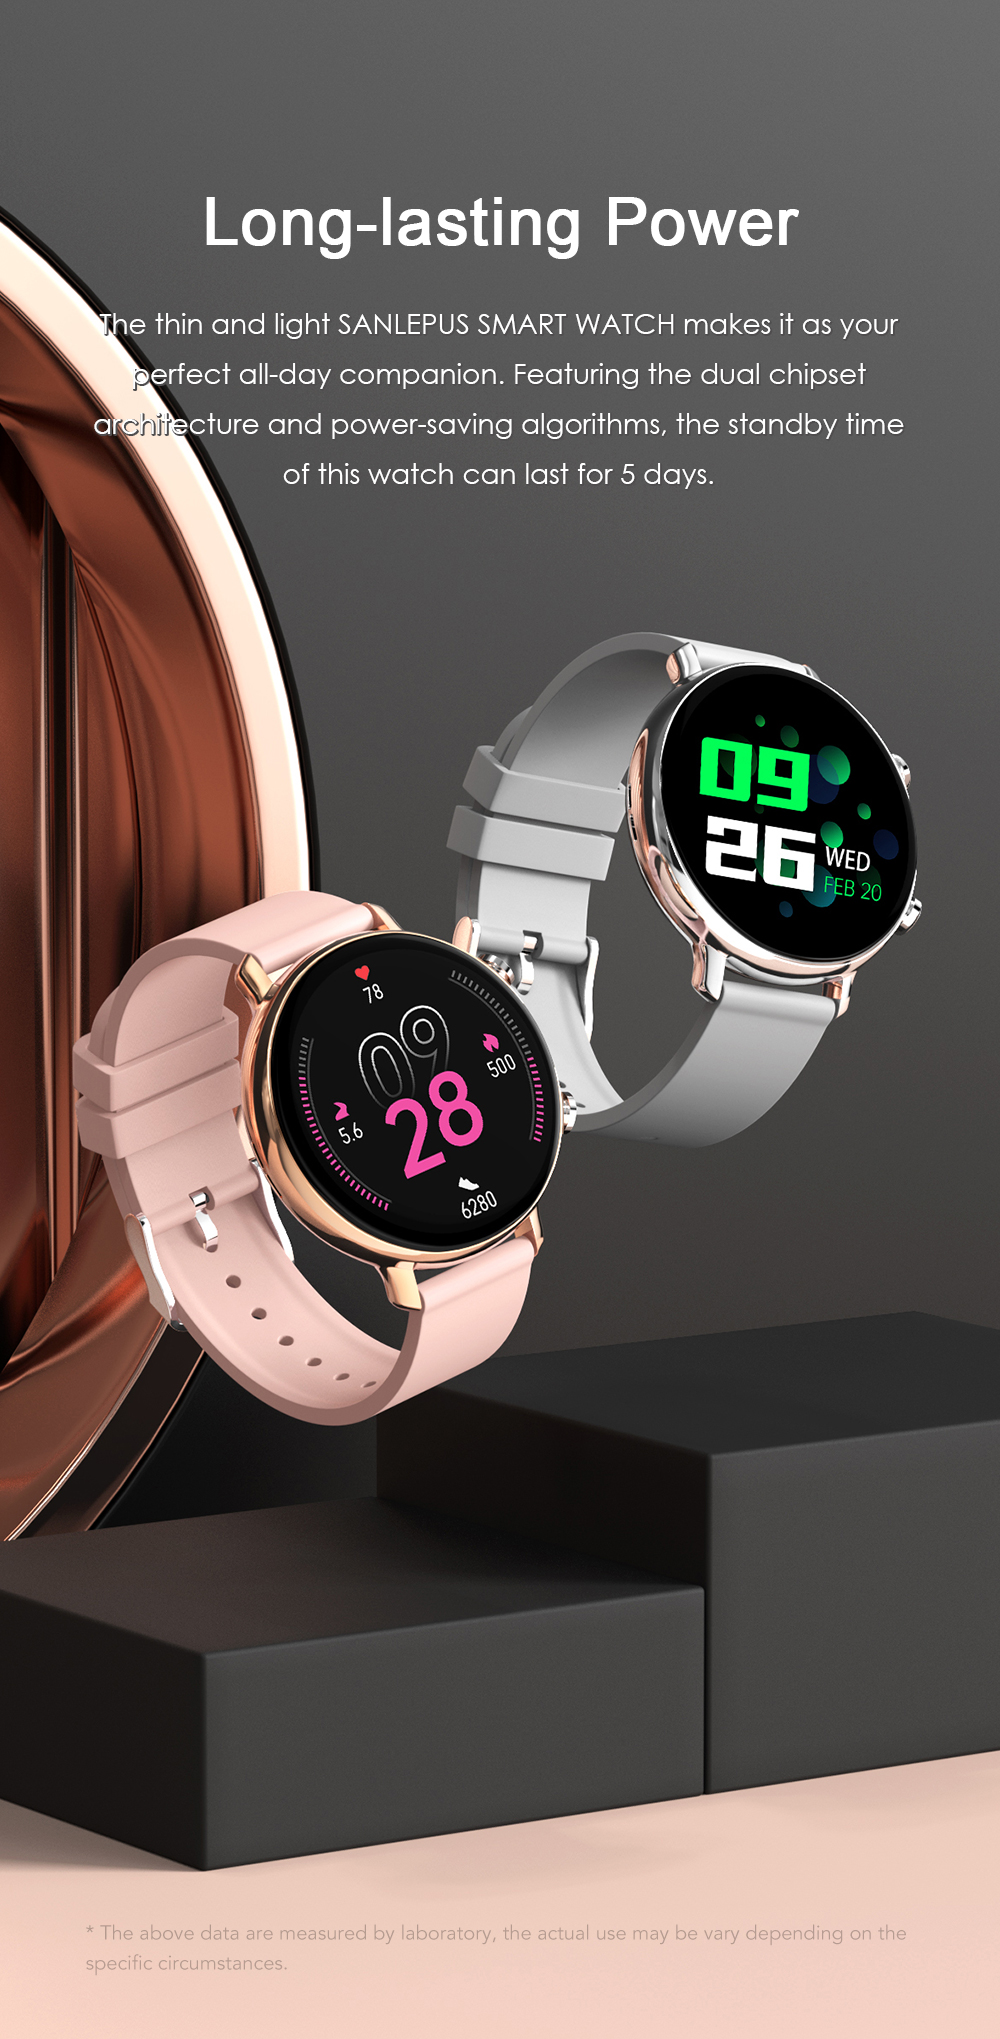 H8e51eb495f0d4ec1b6b6da5ee78bdb5aE SANLEPUS ECG PPG Smart Watch With Dial Calls 2021 New Men Women Smartwatch Blood Pressure Monitor For Android Samsung Apple